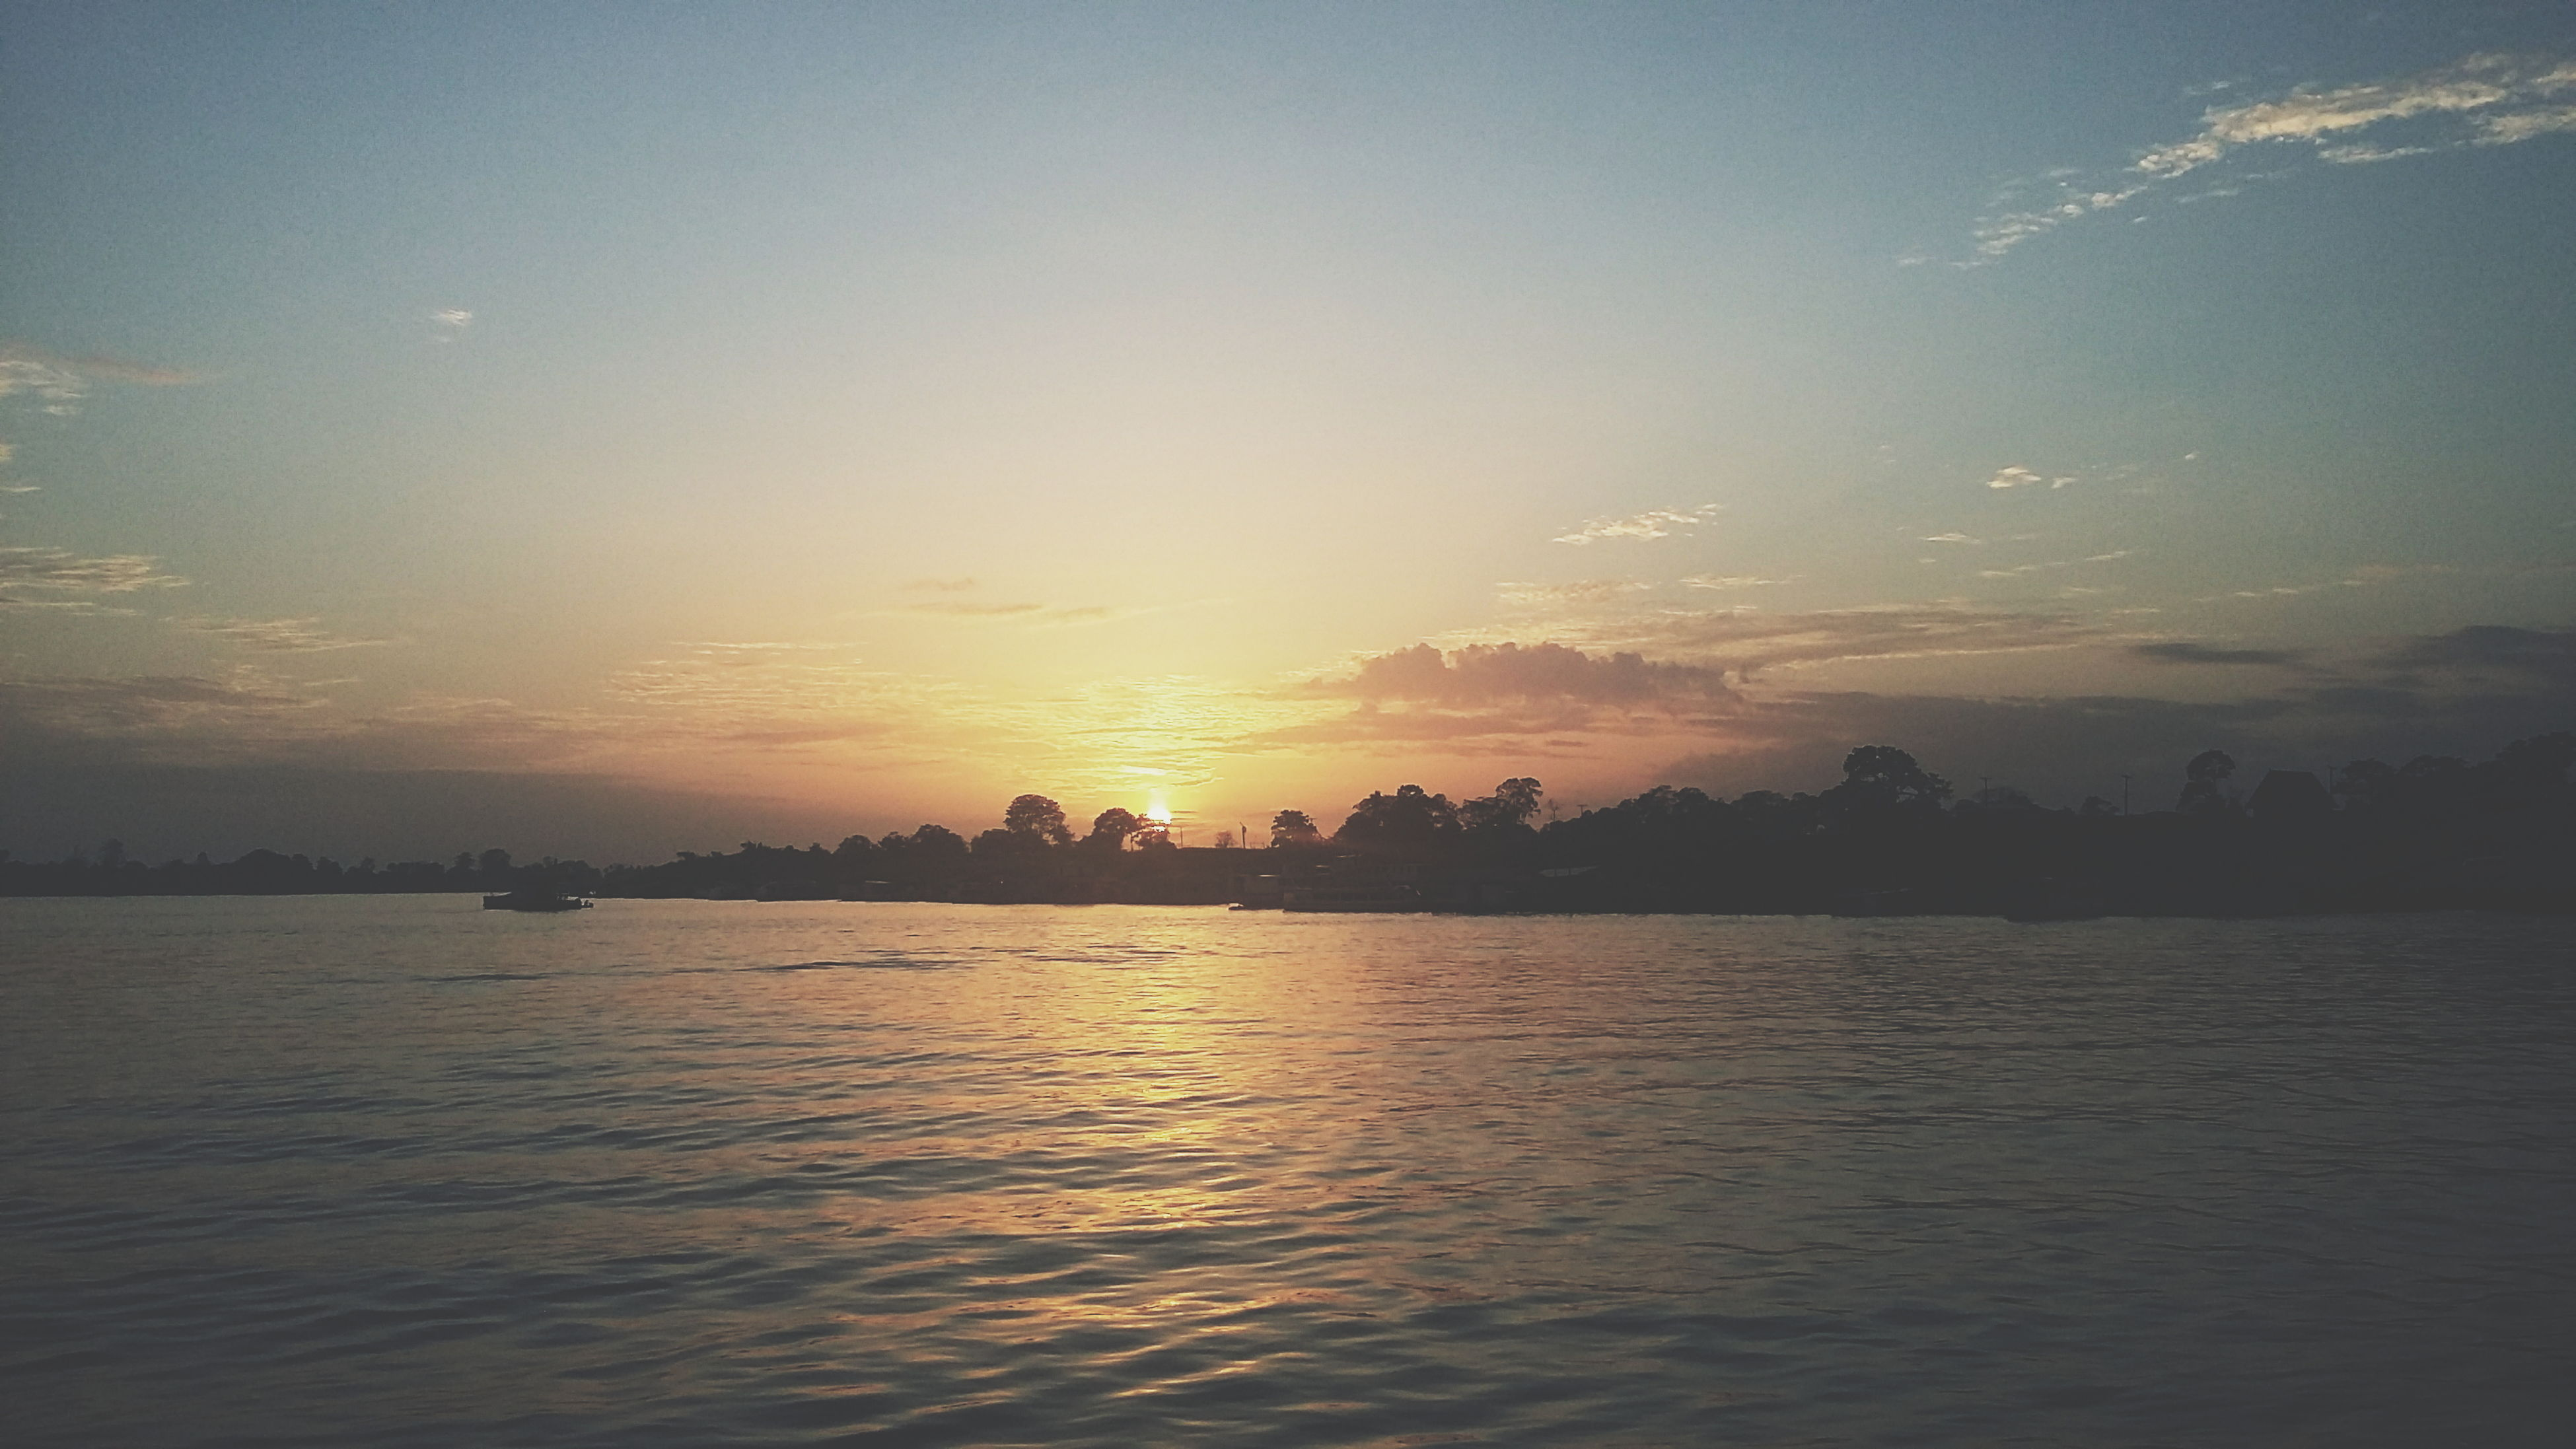 sunset, water, scenics, waterfront, tranquil scene, sky, tranquility, beauty in nature, sun, silhouette, sea, nature, reflection, idyllic, sunlight, cloud - sky, orange color, lake, rippled, river